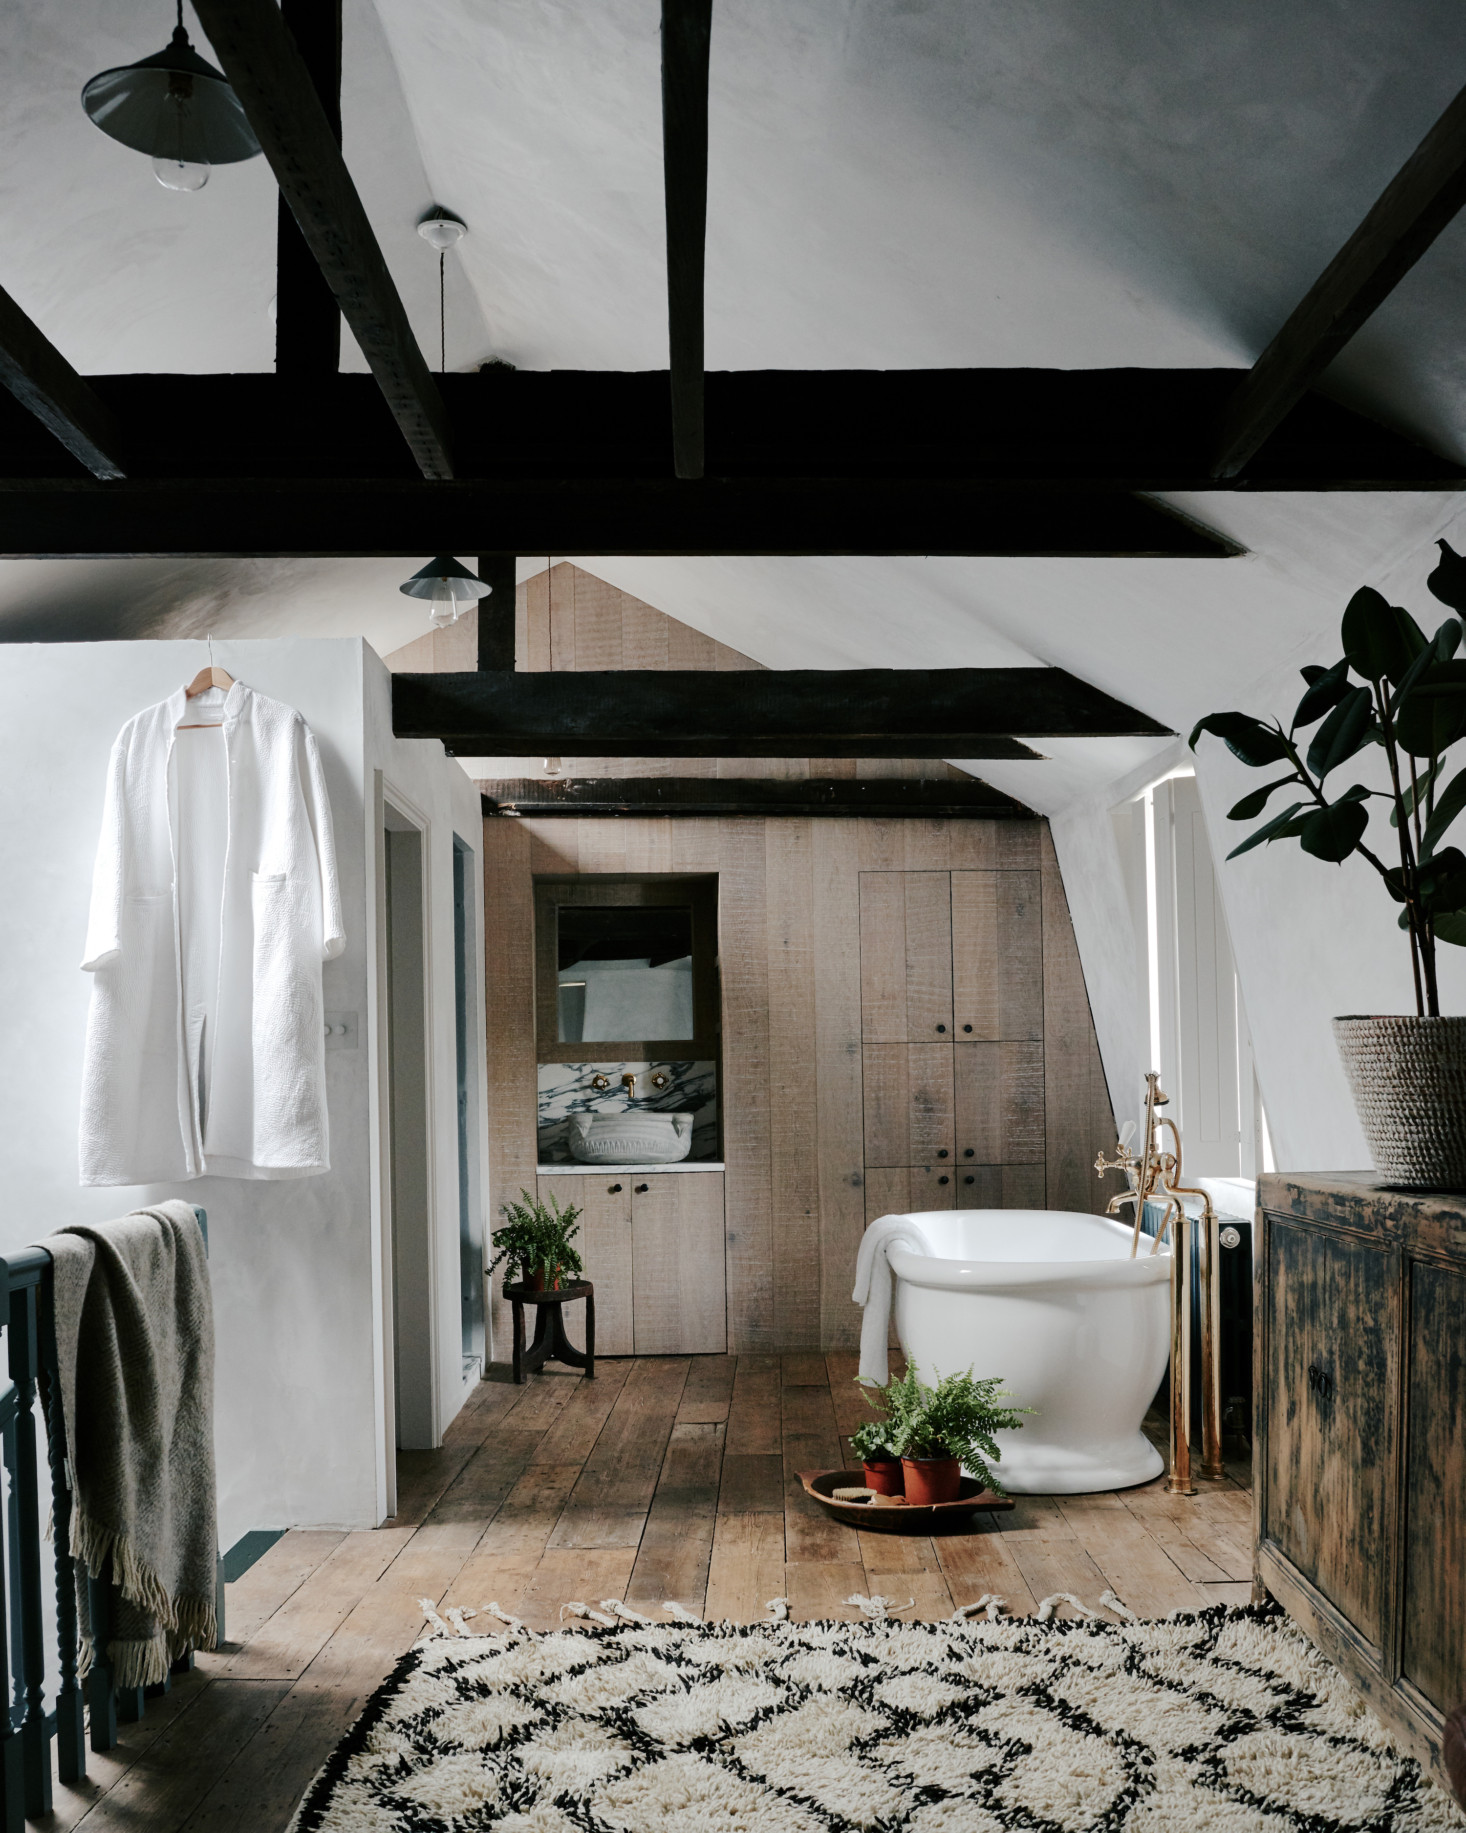 Steal This Look: Ensuite Bath Alcove in a London Renovation